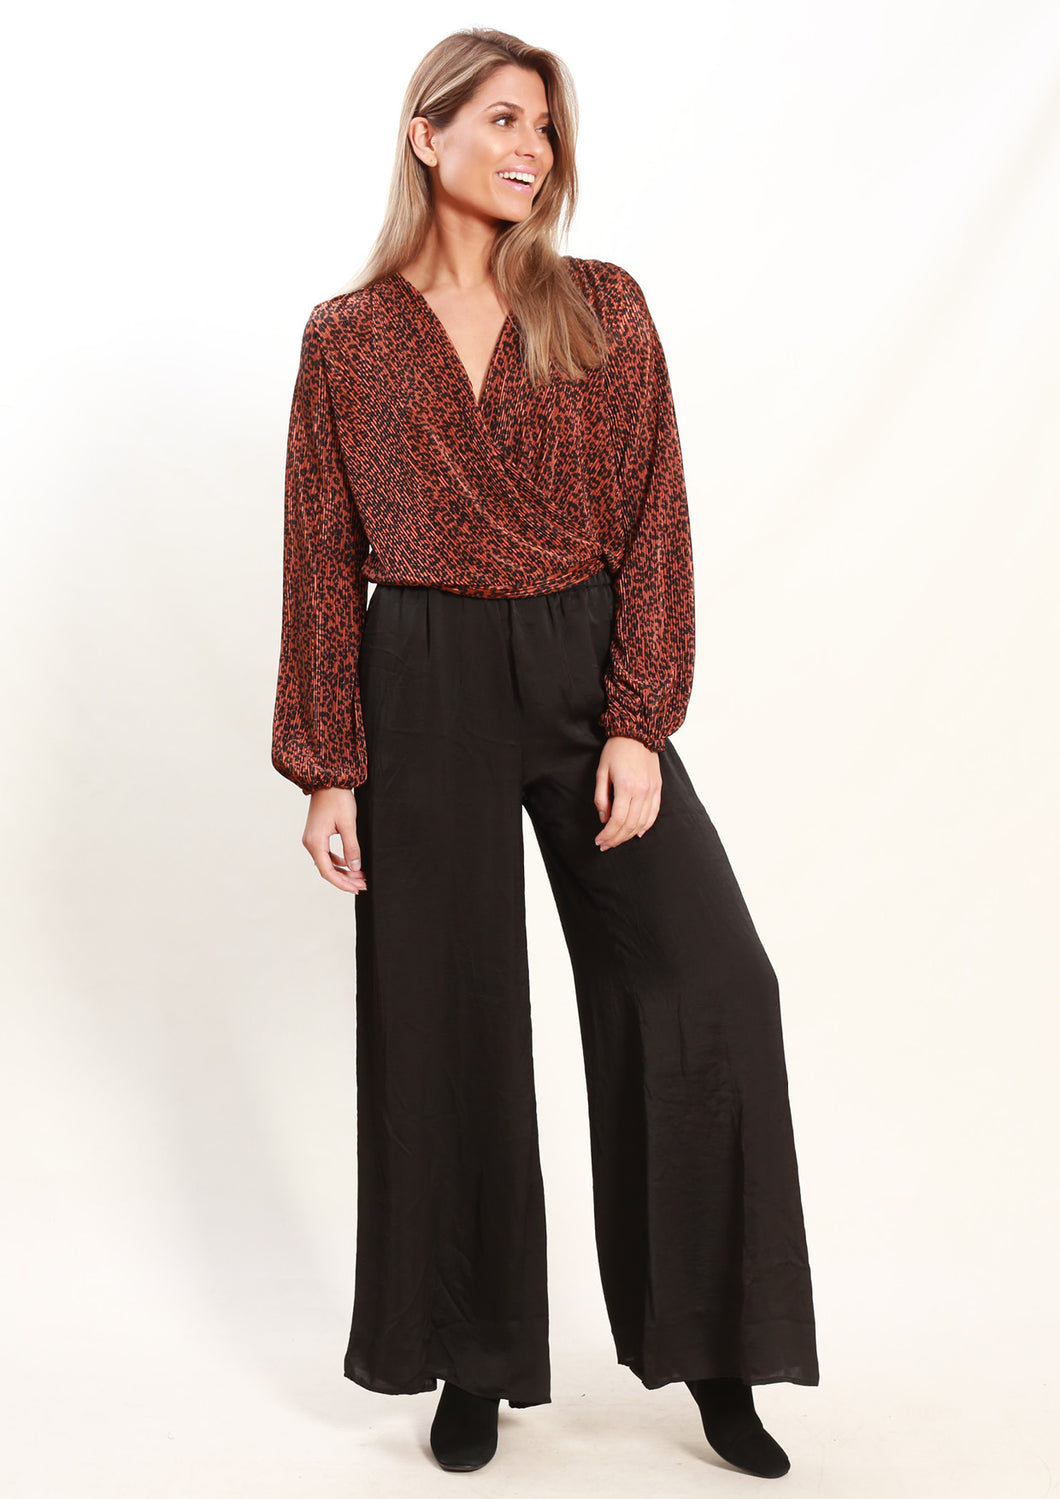 LA0025-1SS Rust Leopard Print Top(Pack)